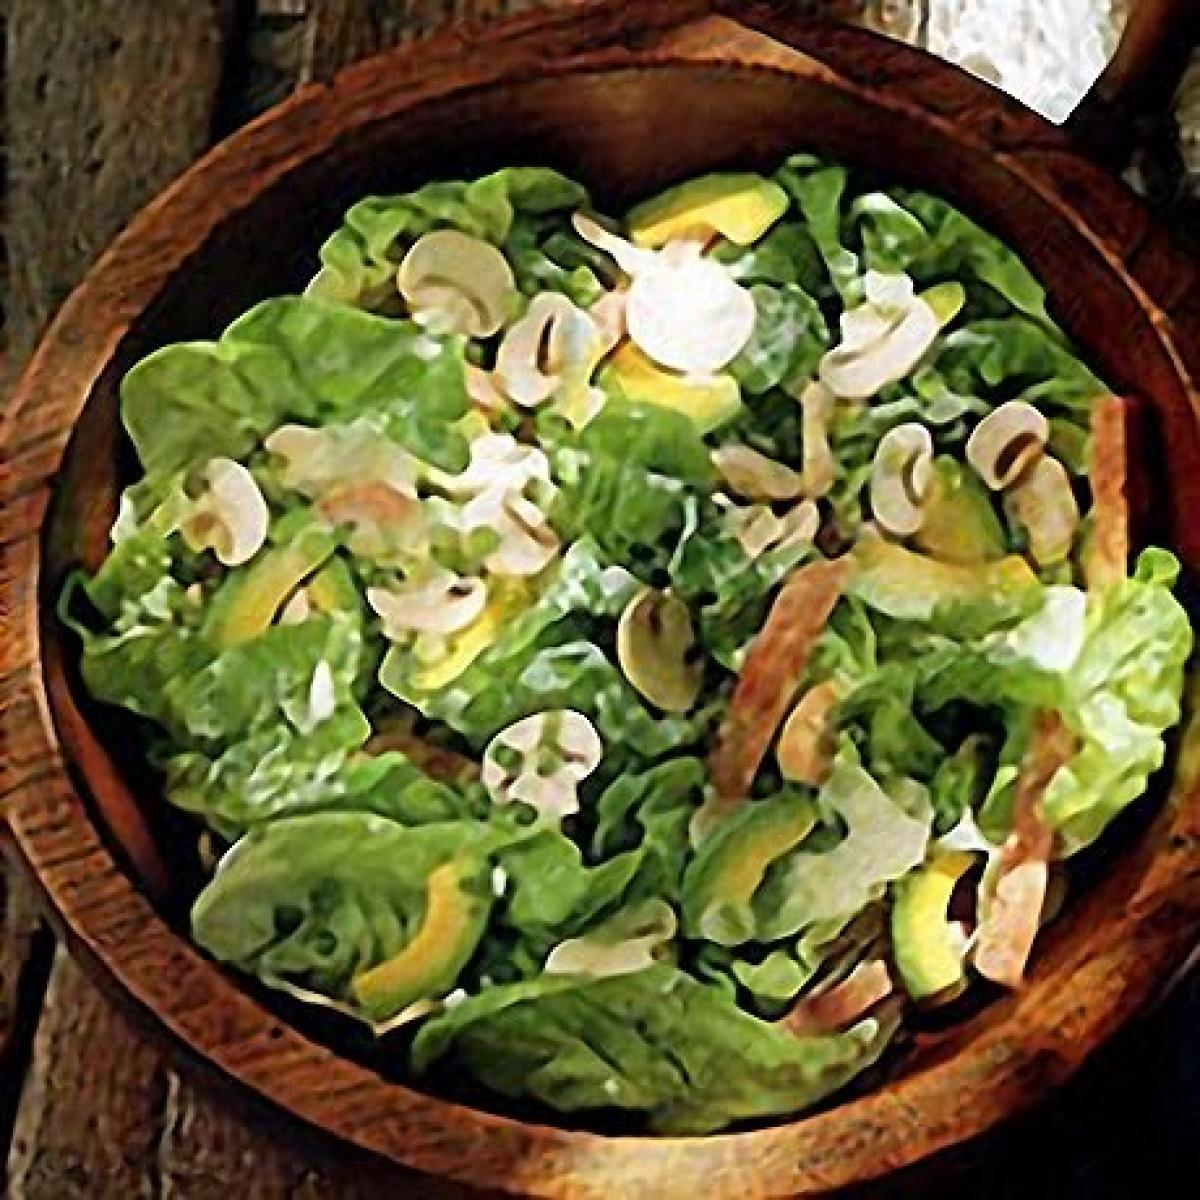 A picture of Delia's Four Star Salad recipe